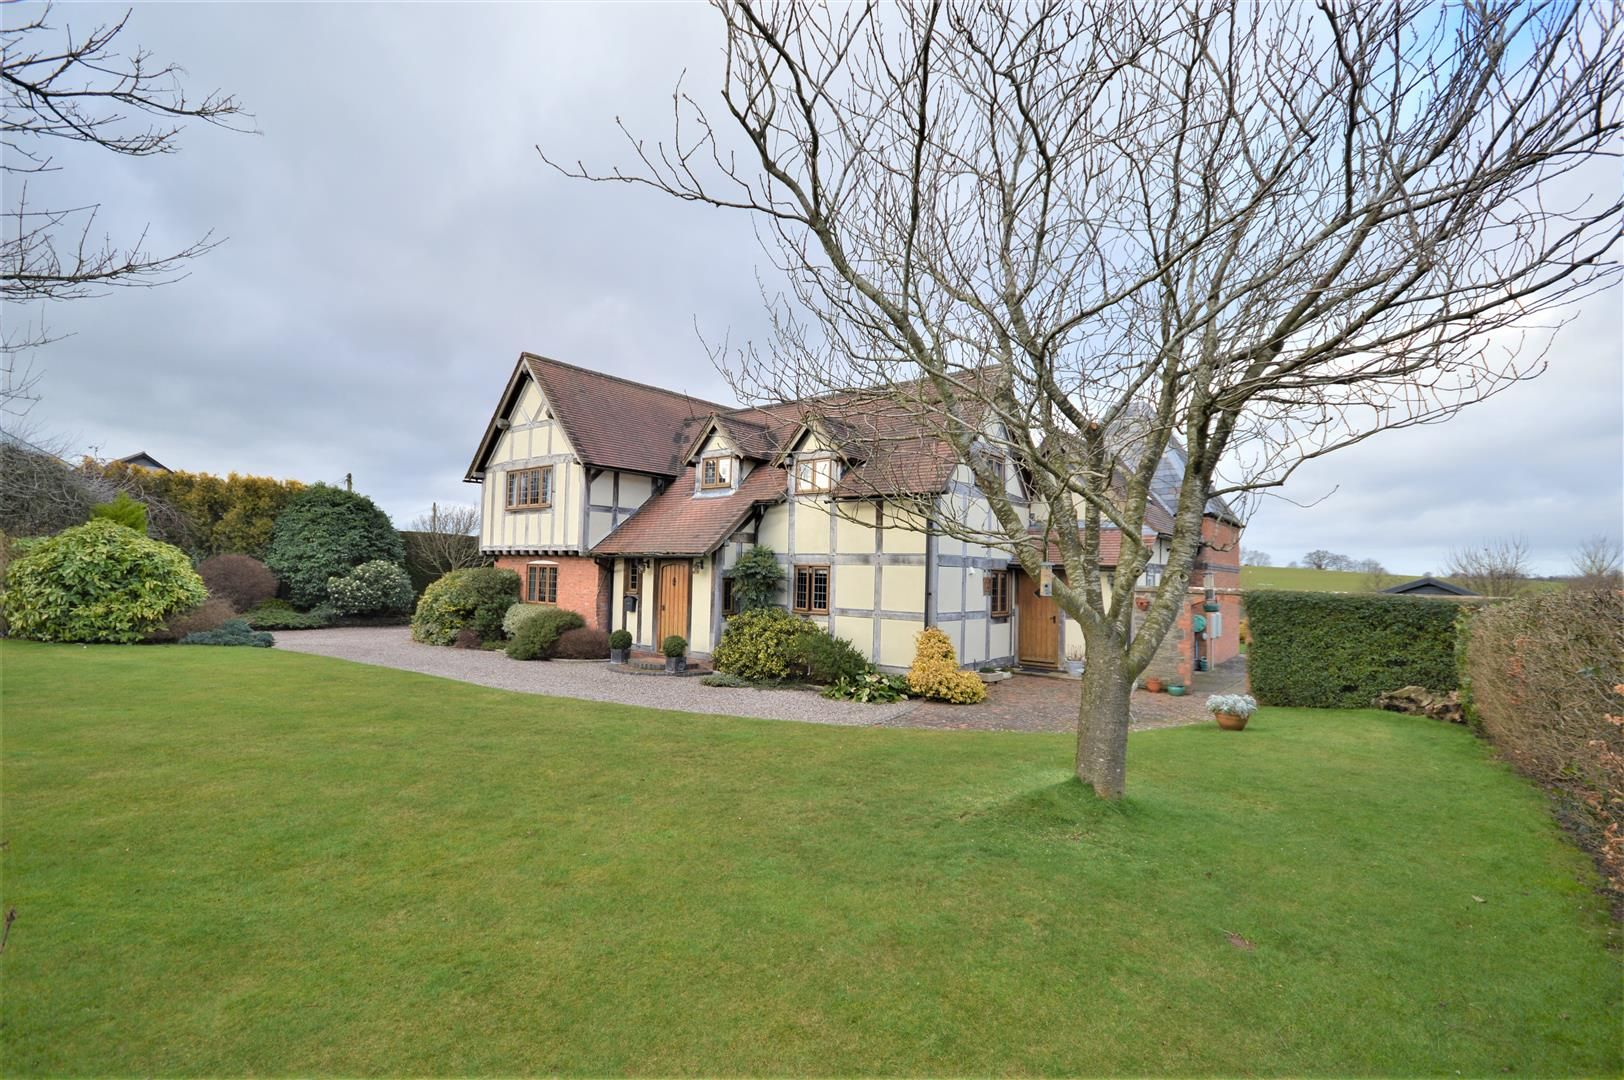 4 bed detached for sale in Marden  - Property Image 12